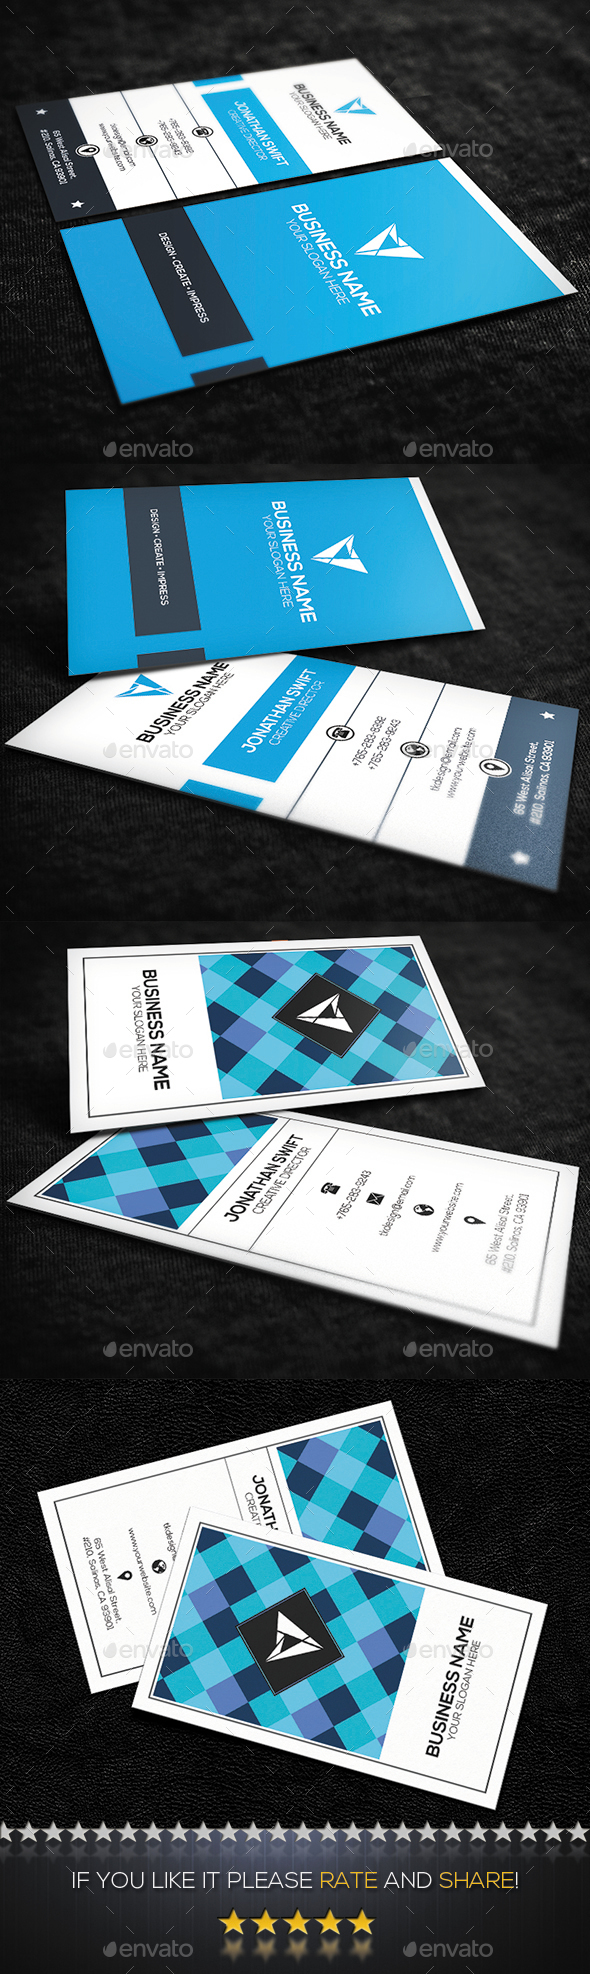 2 in 1 Corporate Business Card Bundle No.07 - Corporate Business Cards